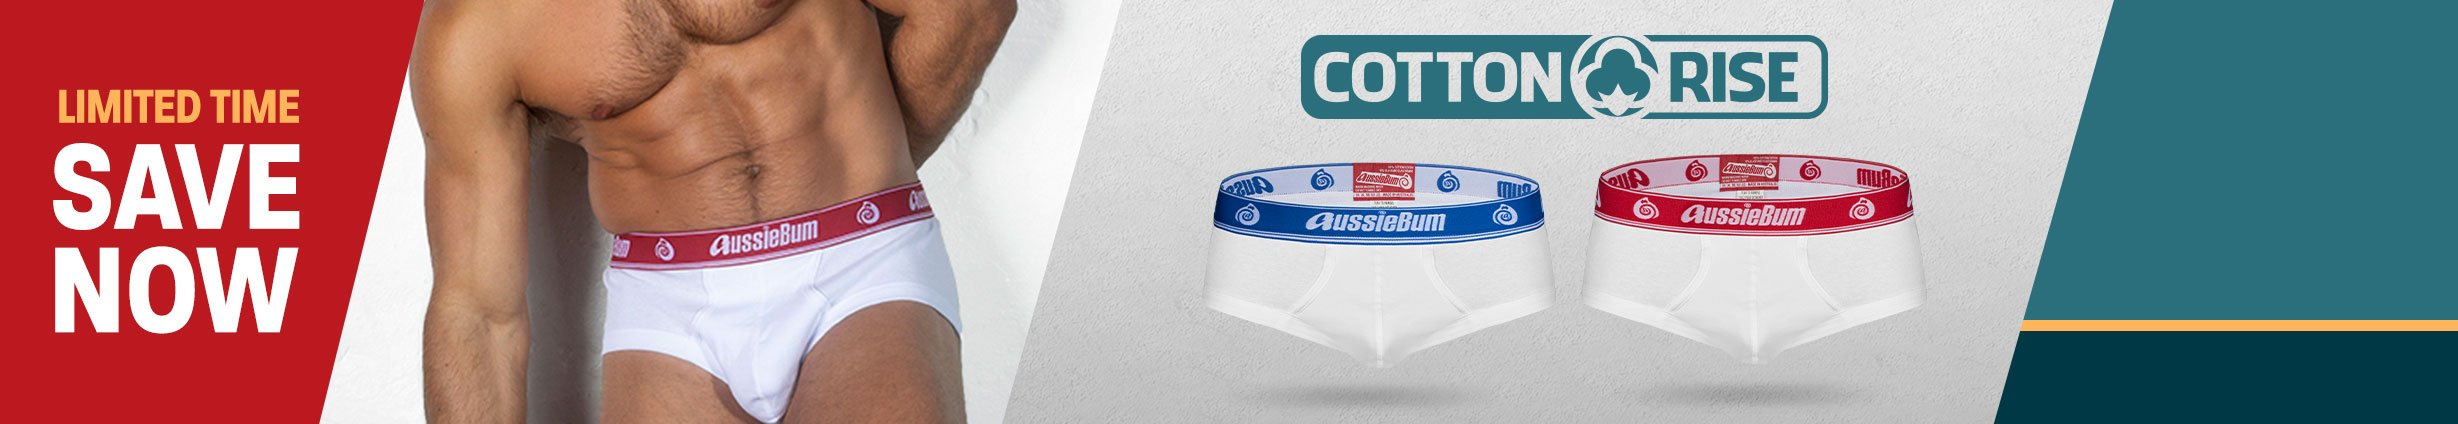 CottonRise Red Homepage Image